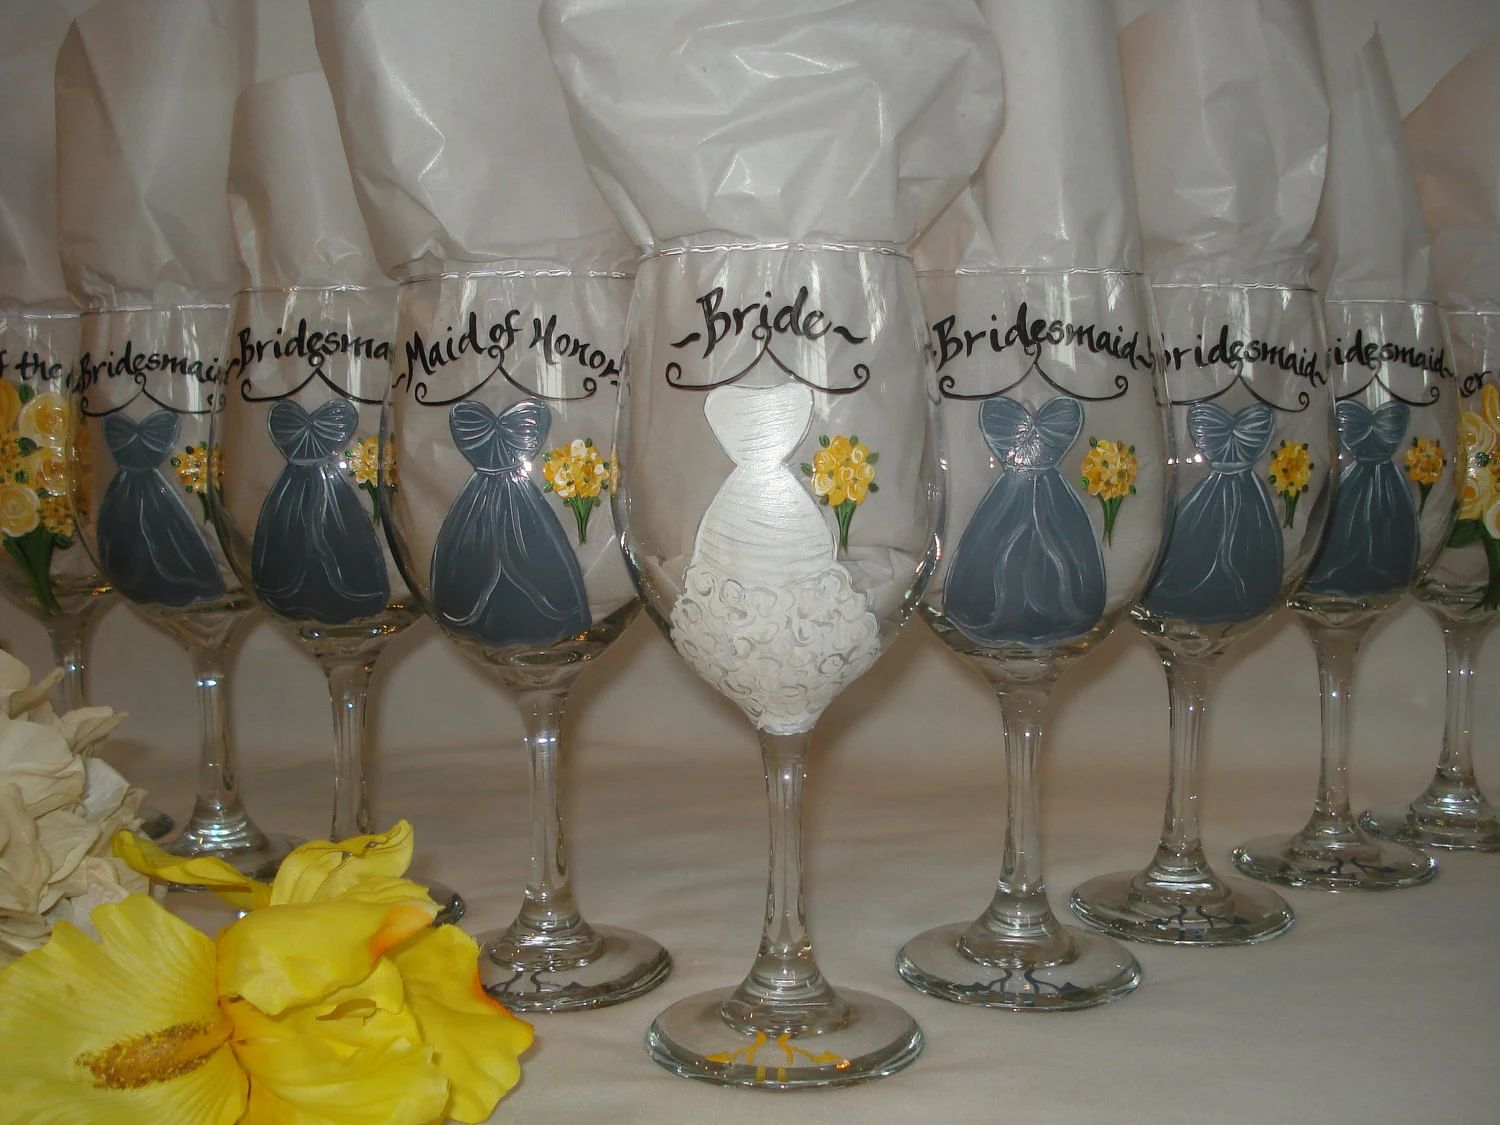 How to decorate wine glasses for bridesmaids -  Painted Bridesmaid Dress Wine Glasses Download